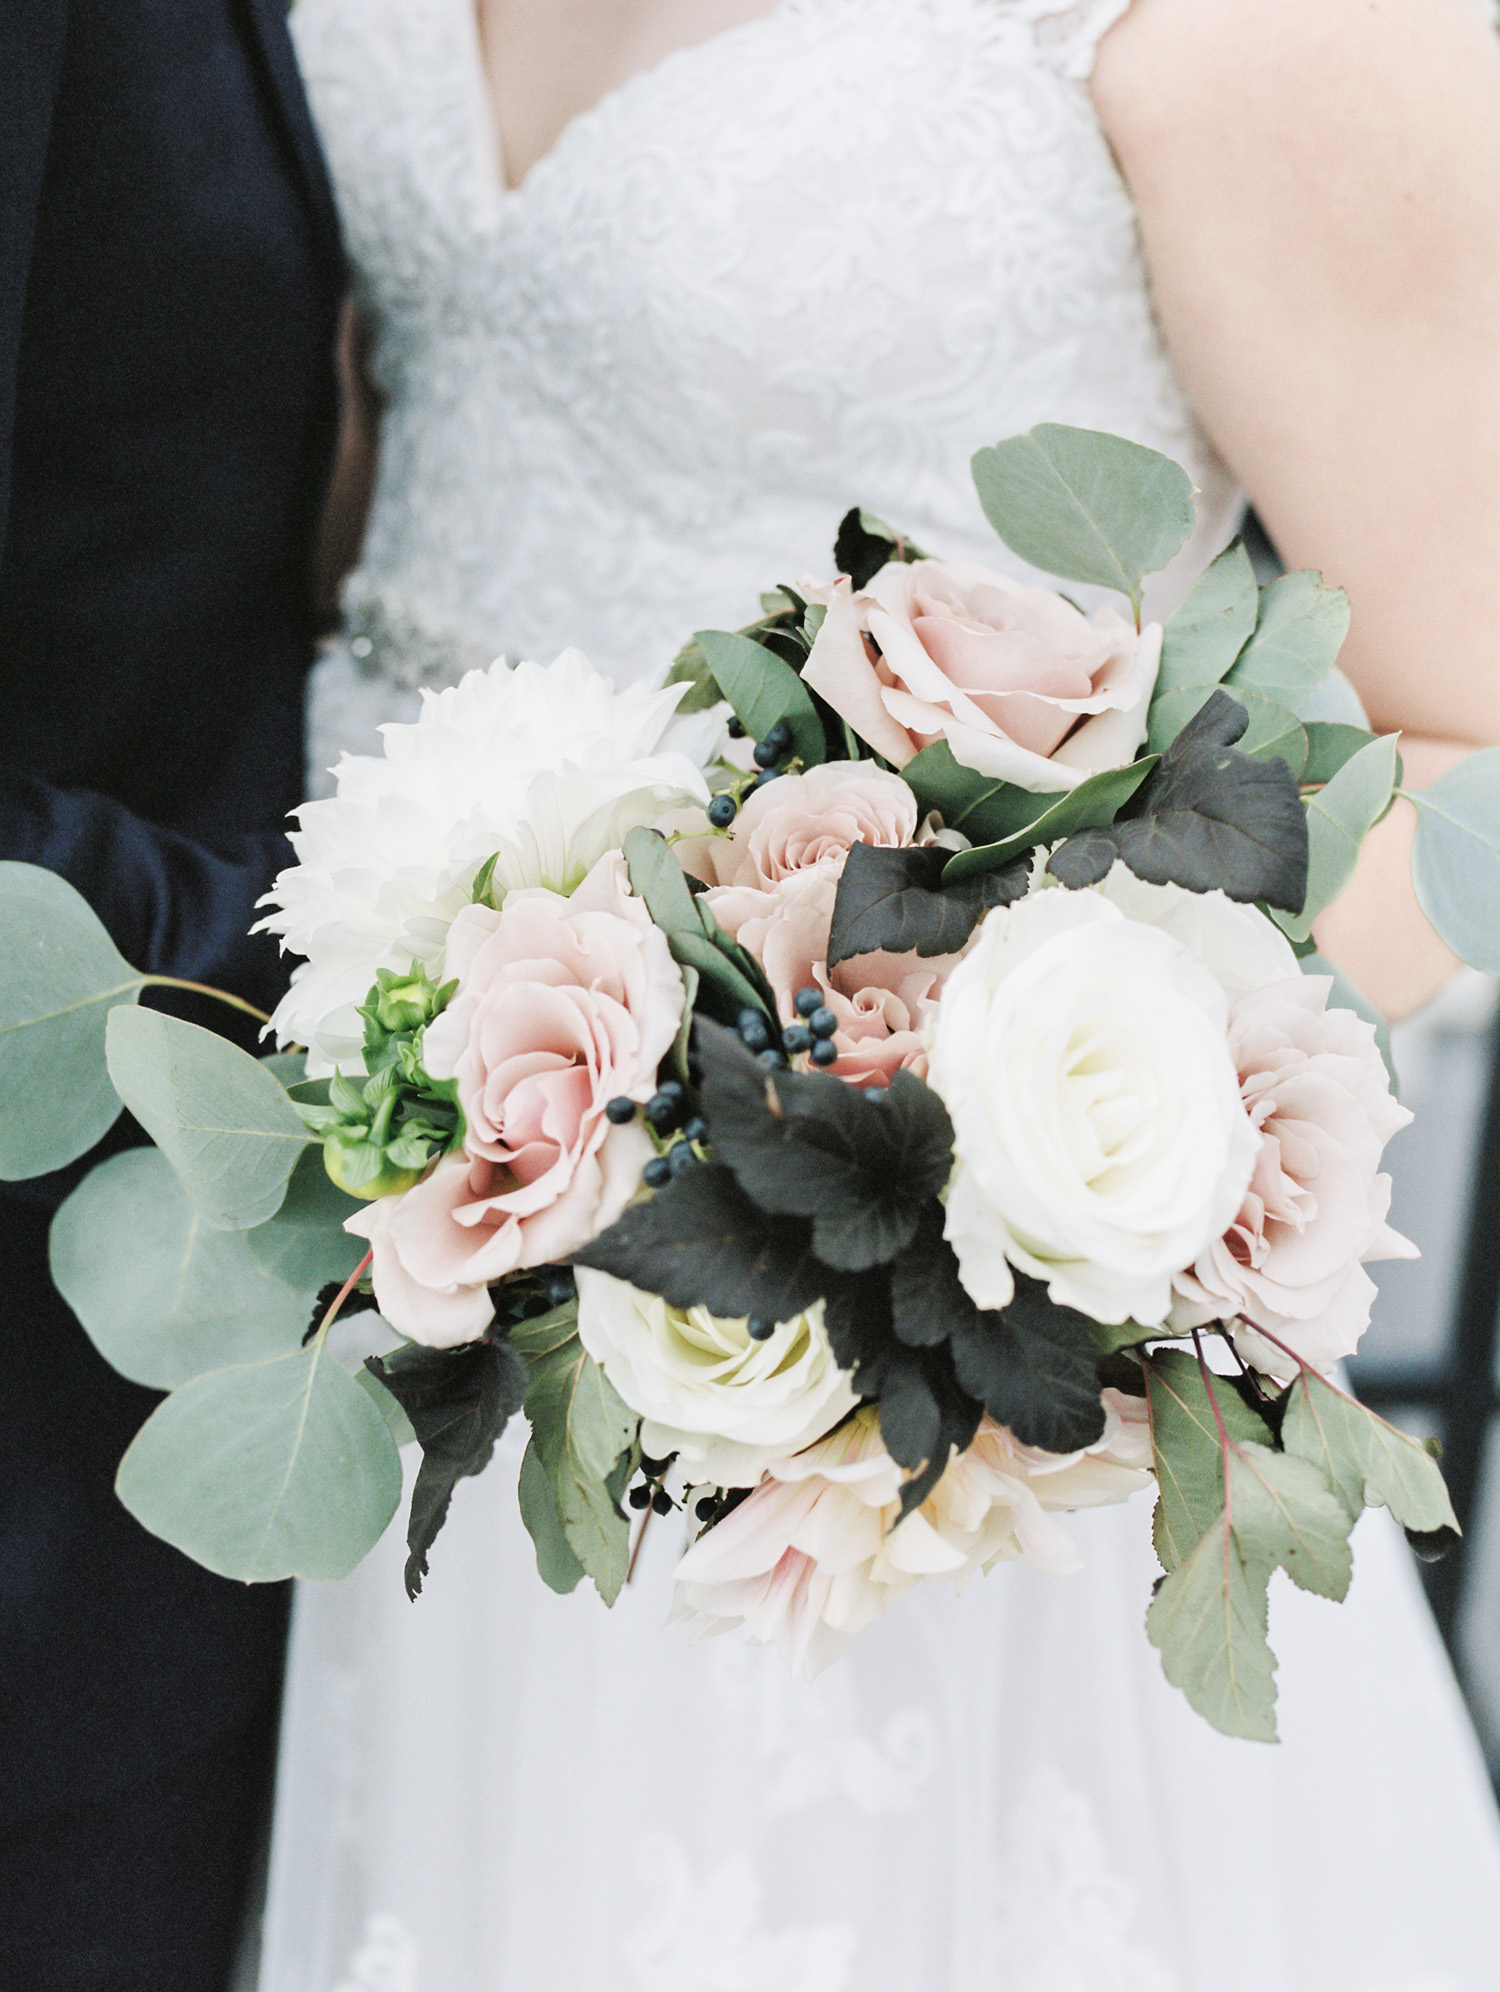 A beautiful bridal bouquet with seeded eucalyptus, and white and pink roses and dahlias